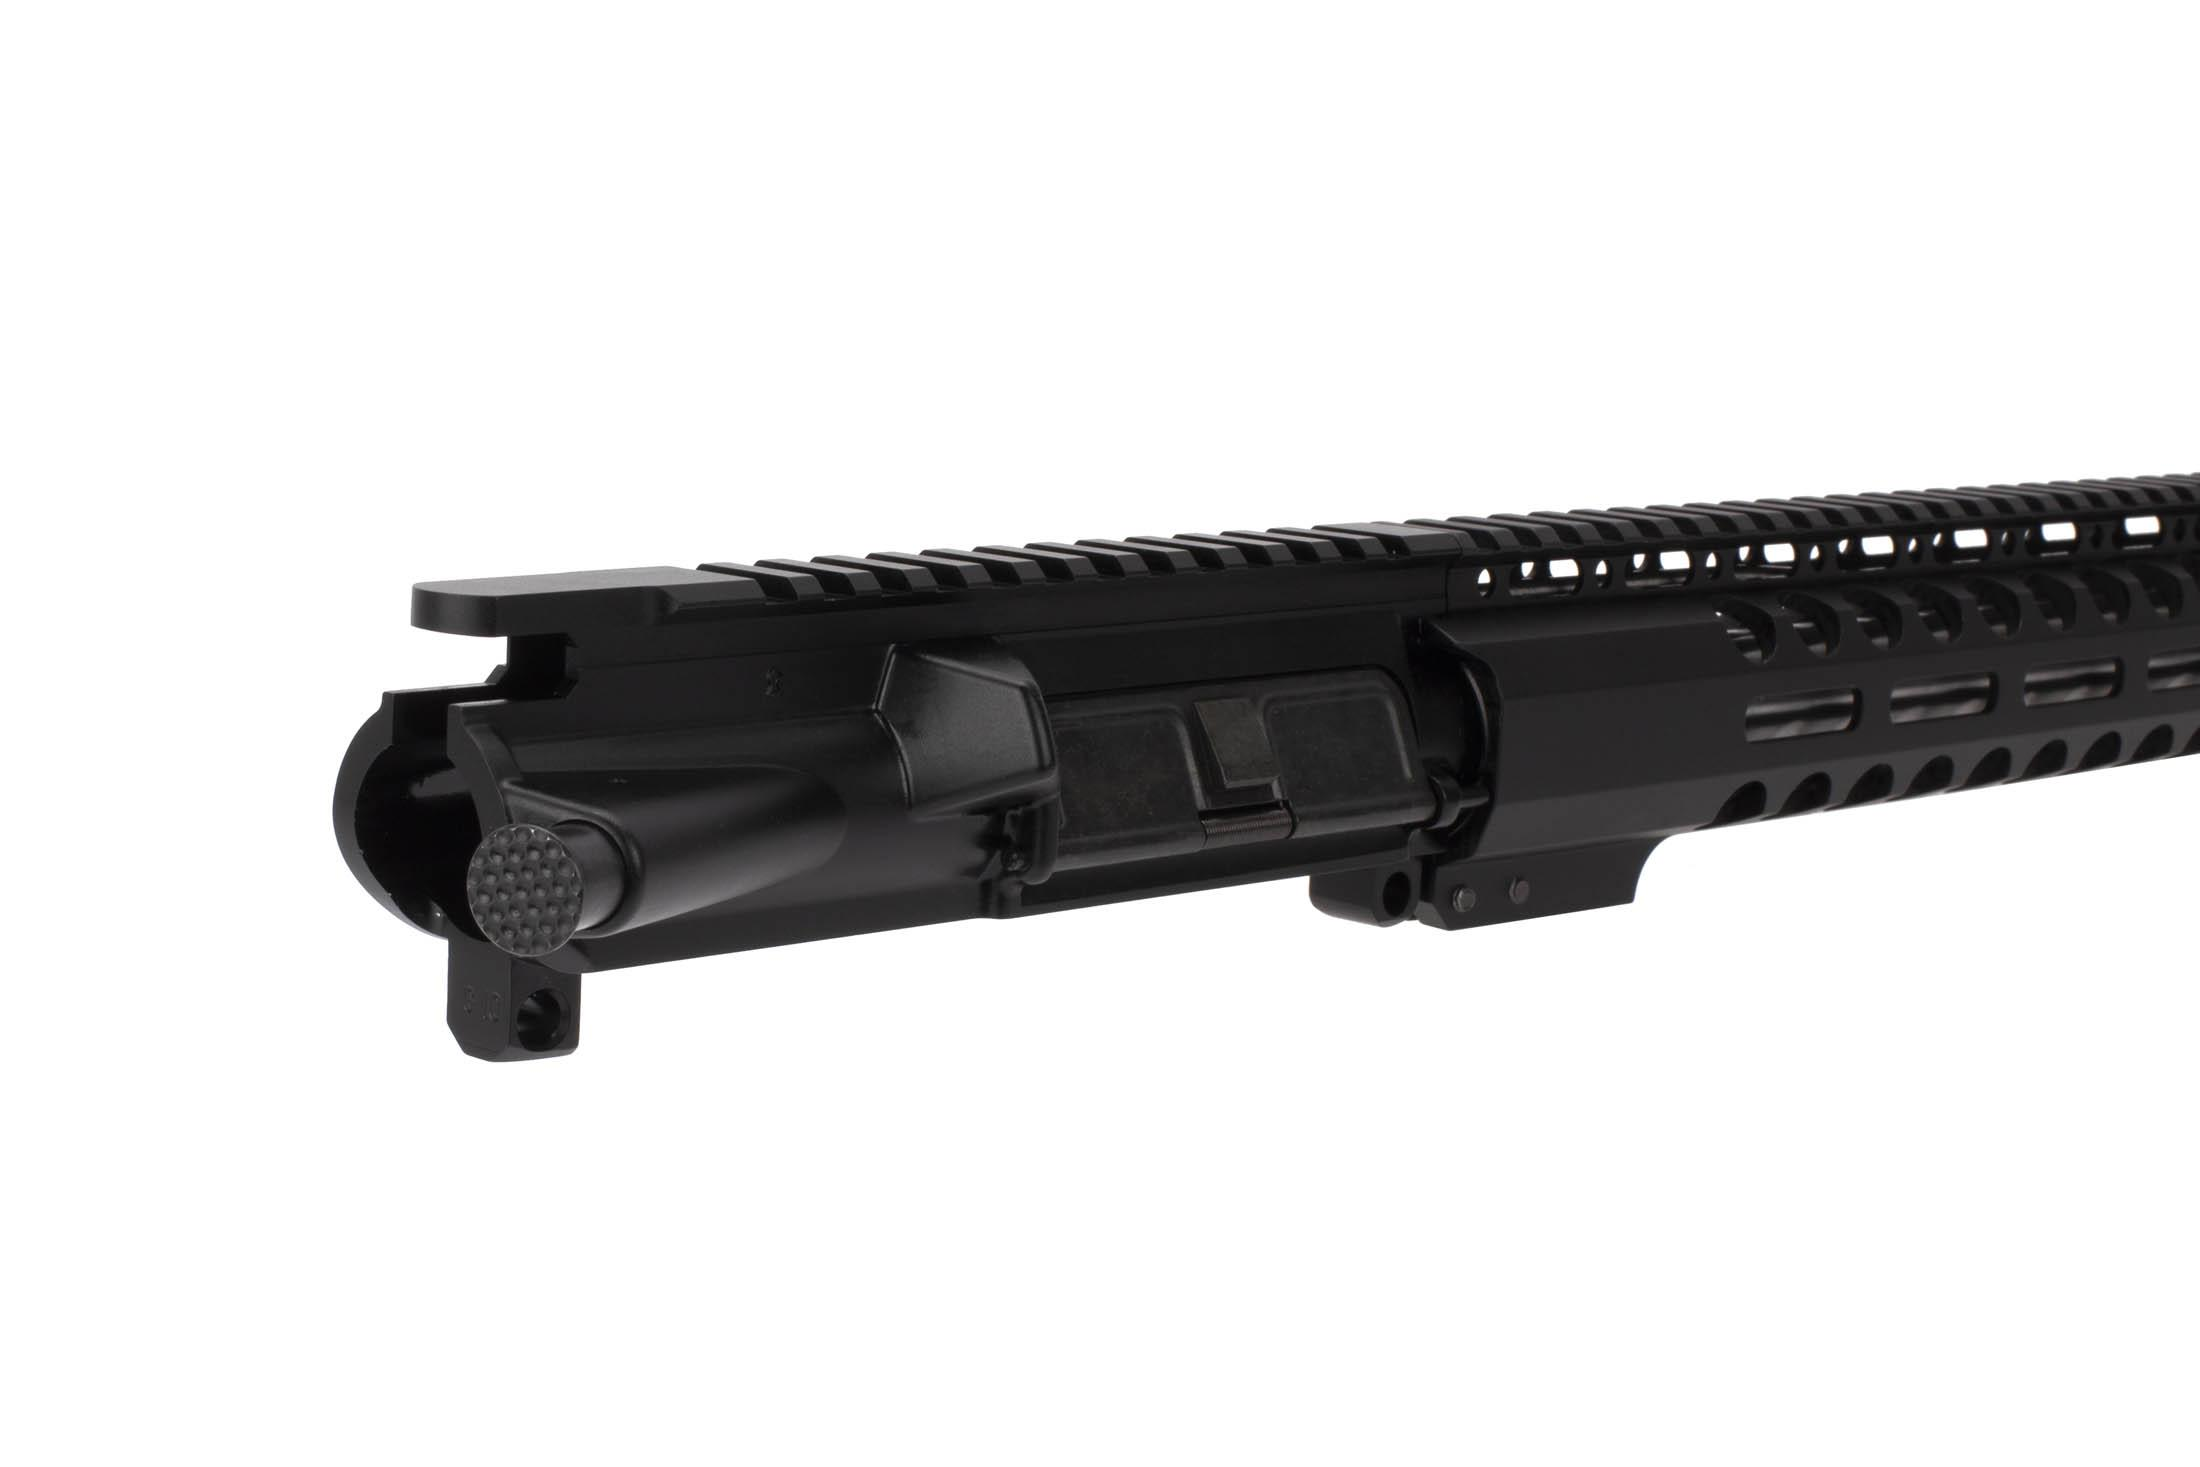 Radical Firearms 18in .223 Wylde barreled upper receiver for the AR-15 includes an M18 cut bolt carrier group.